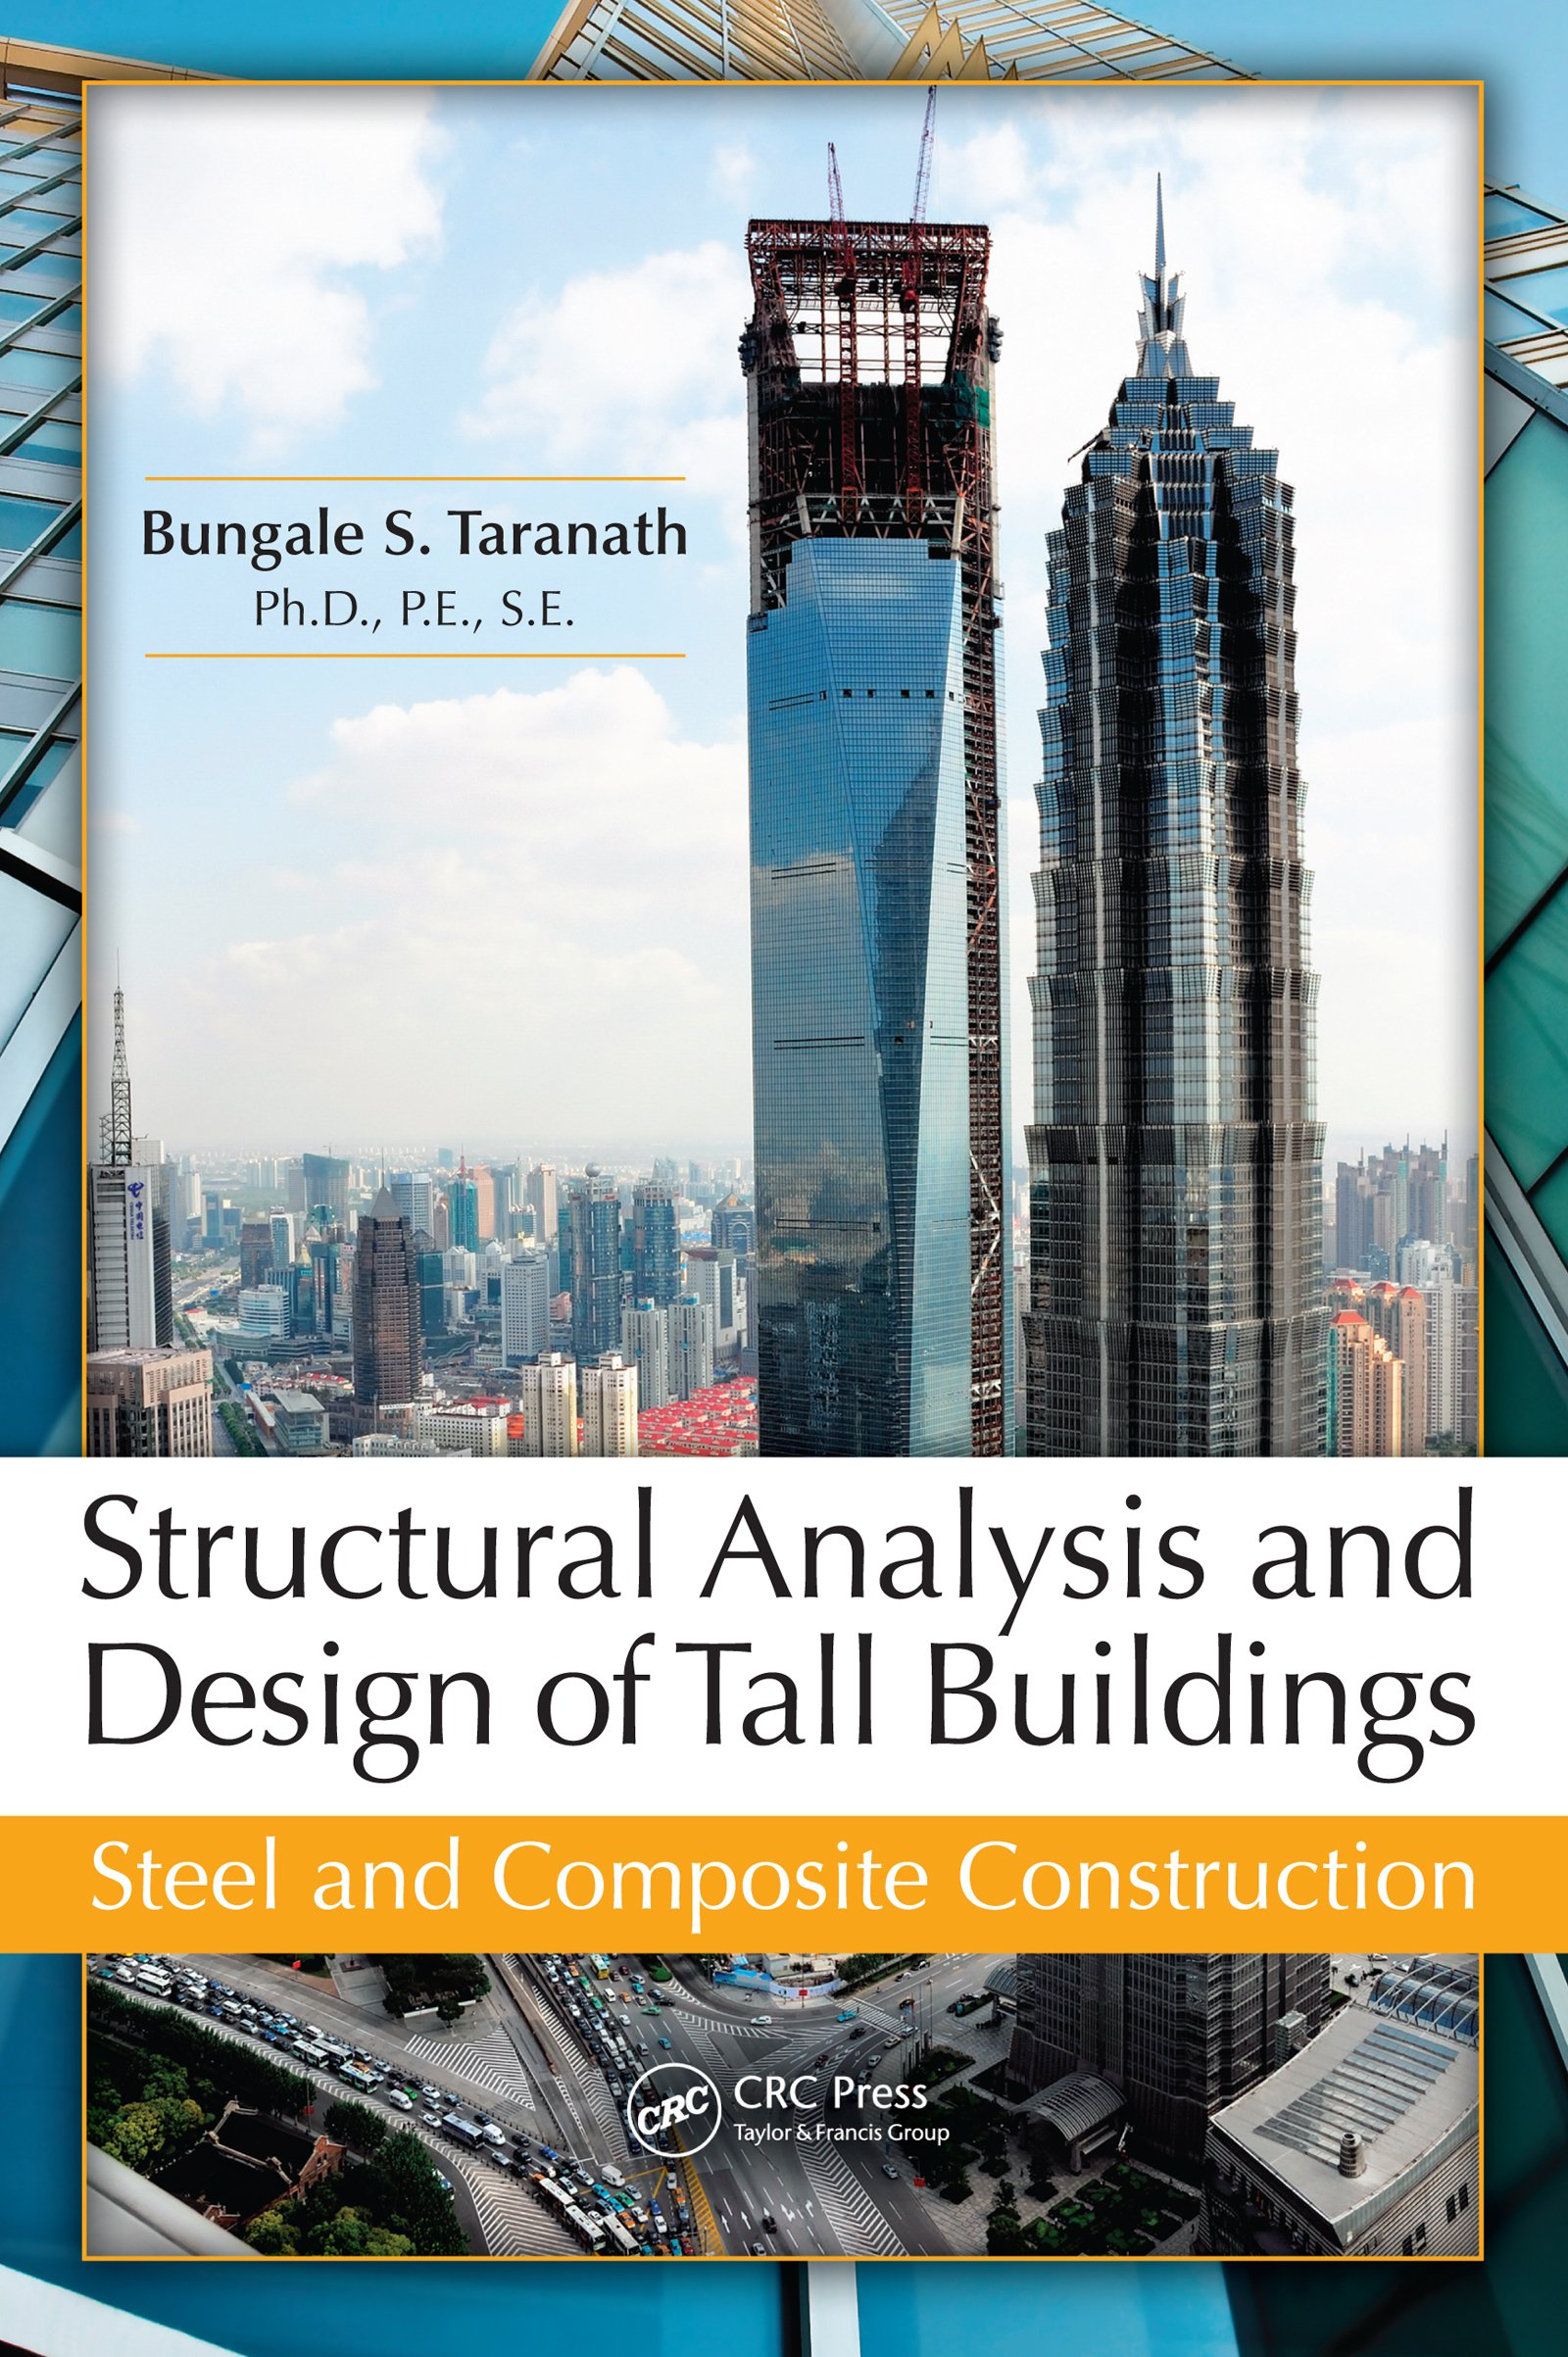 Structural Analysis And Design Of Tall Buildings Steel And Composite Construction Taranath Bungale S Ebook Amazon Com